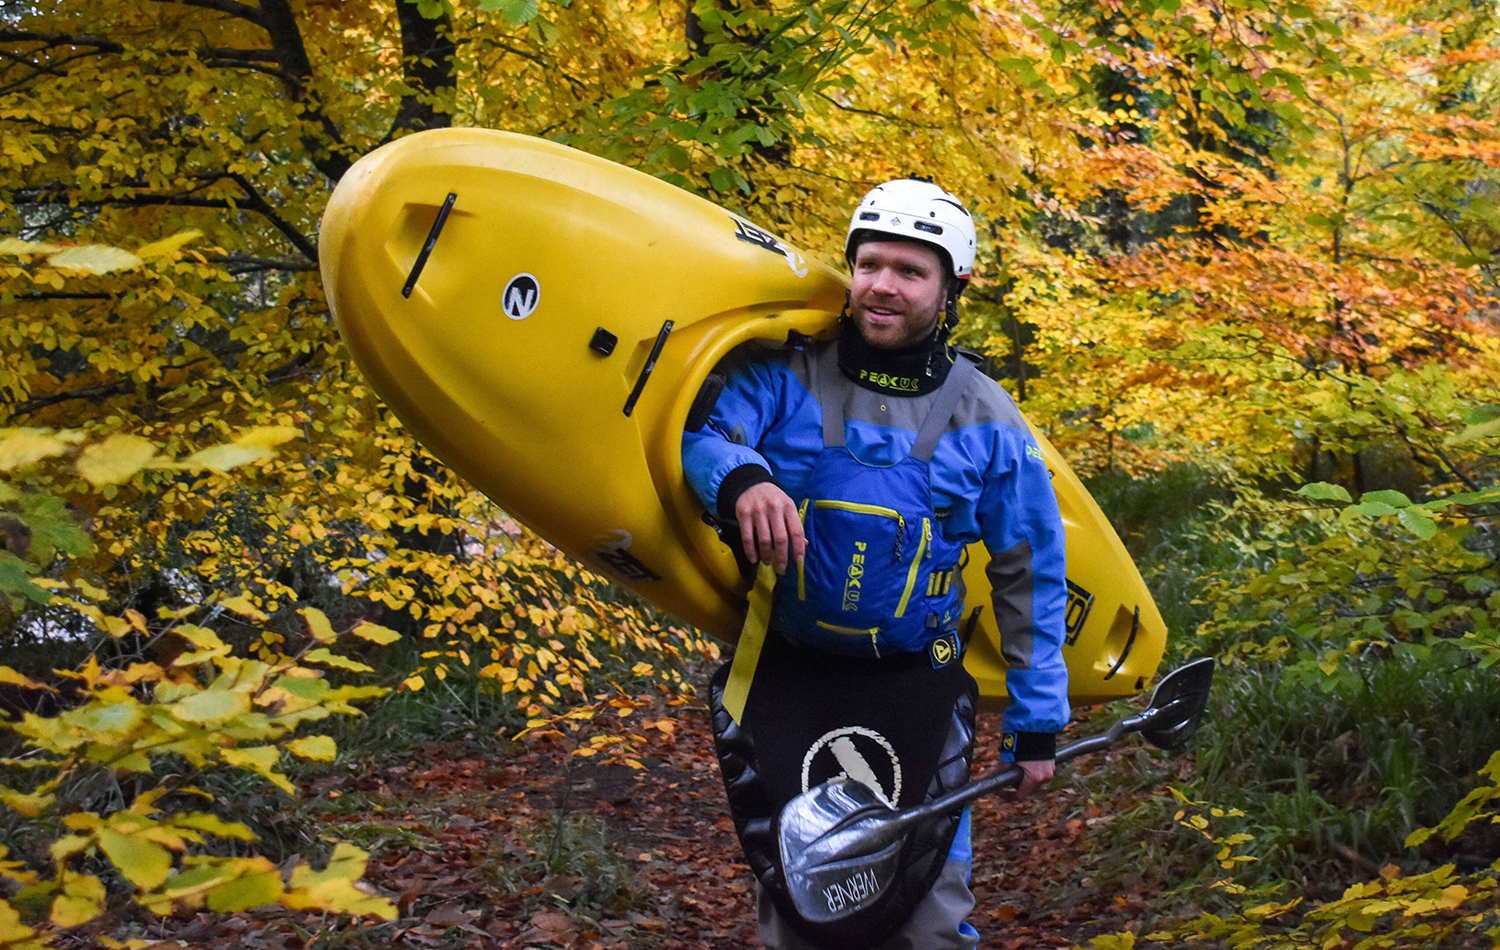 A Man Carrying A Kayak Over His Shoulder